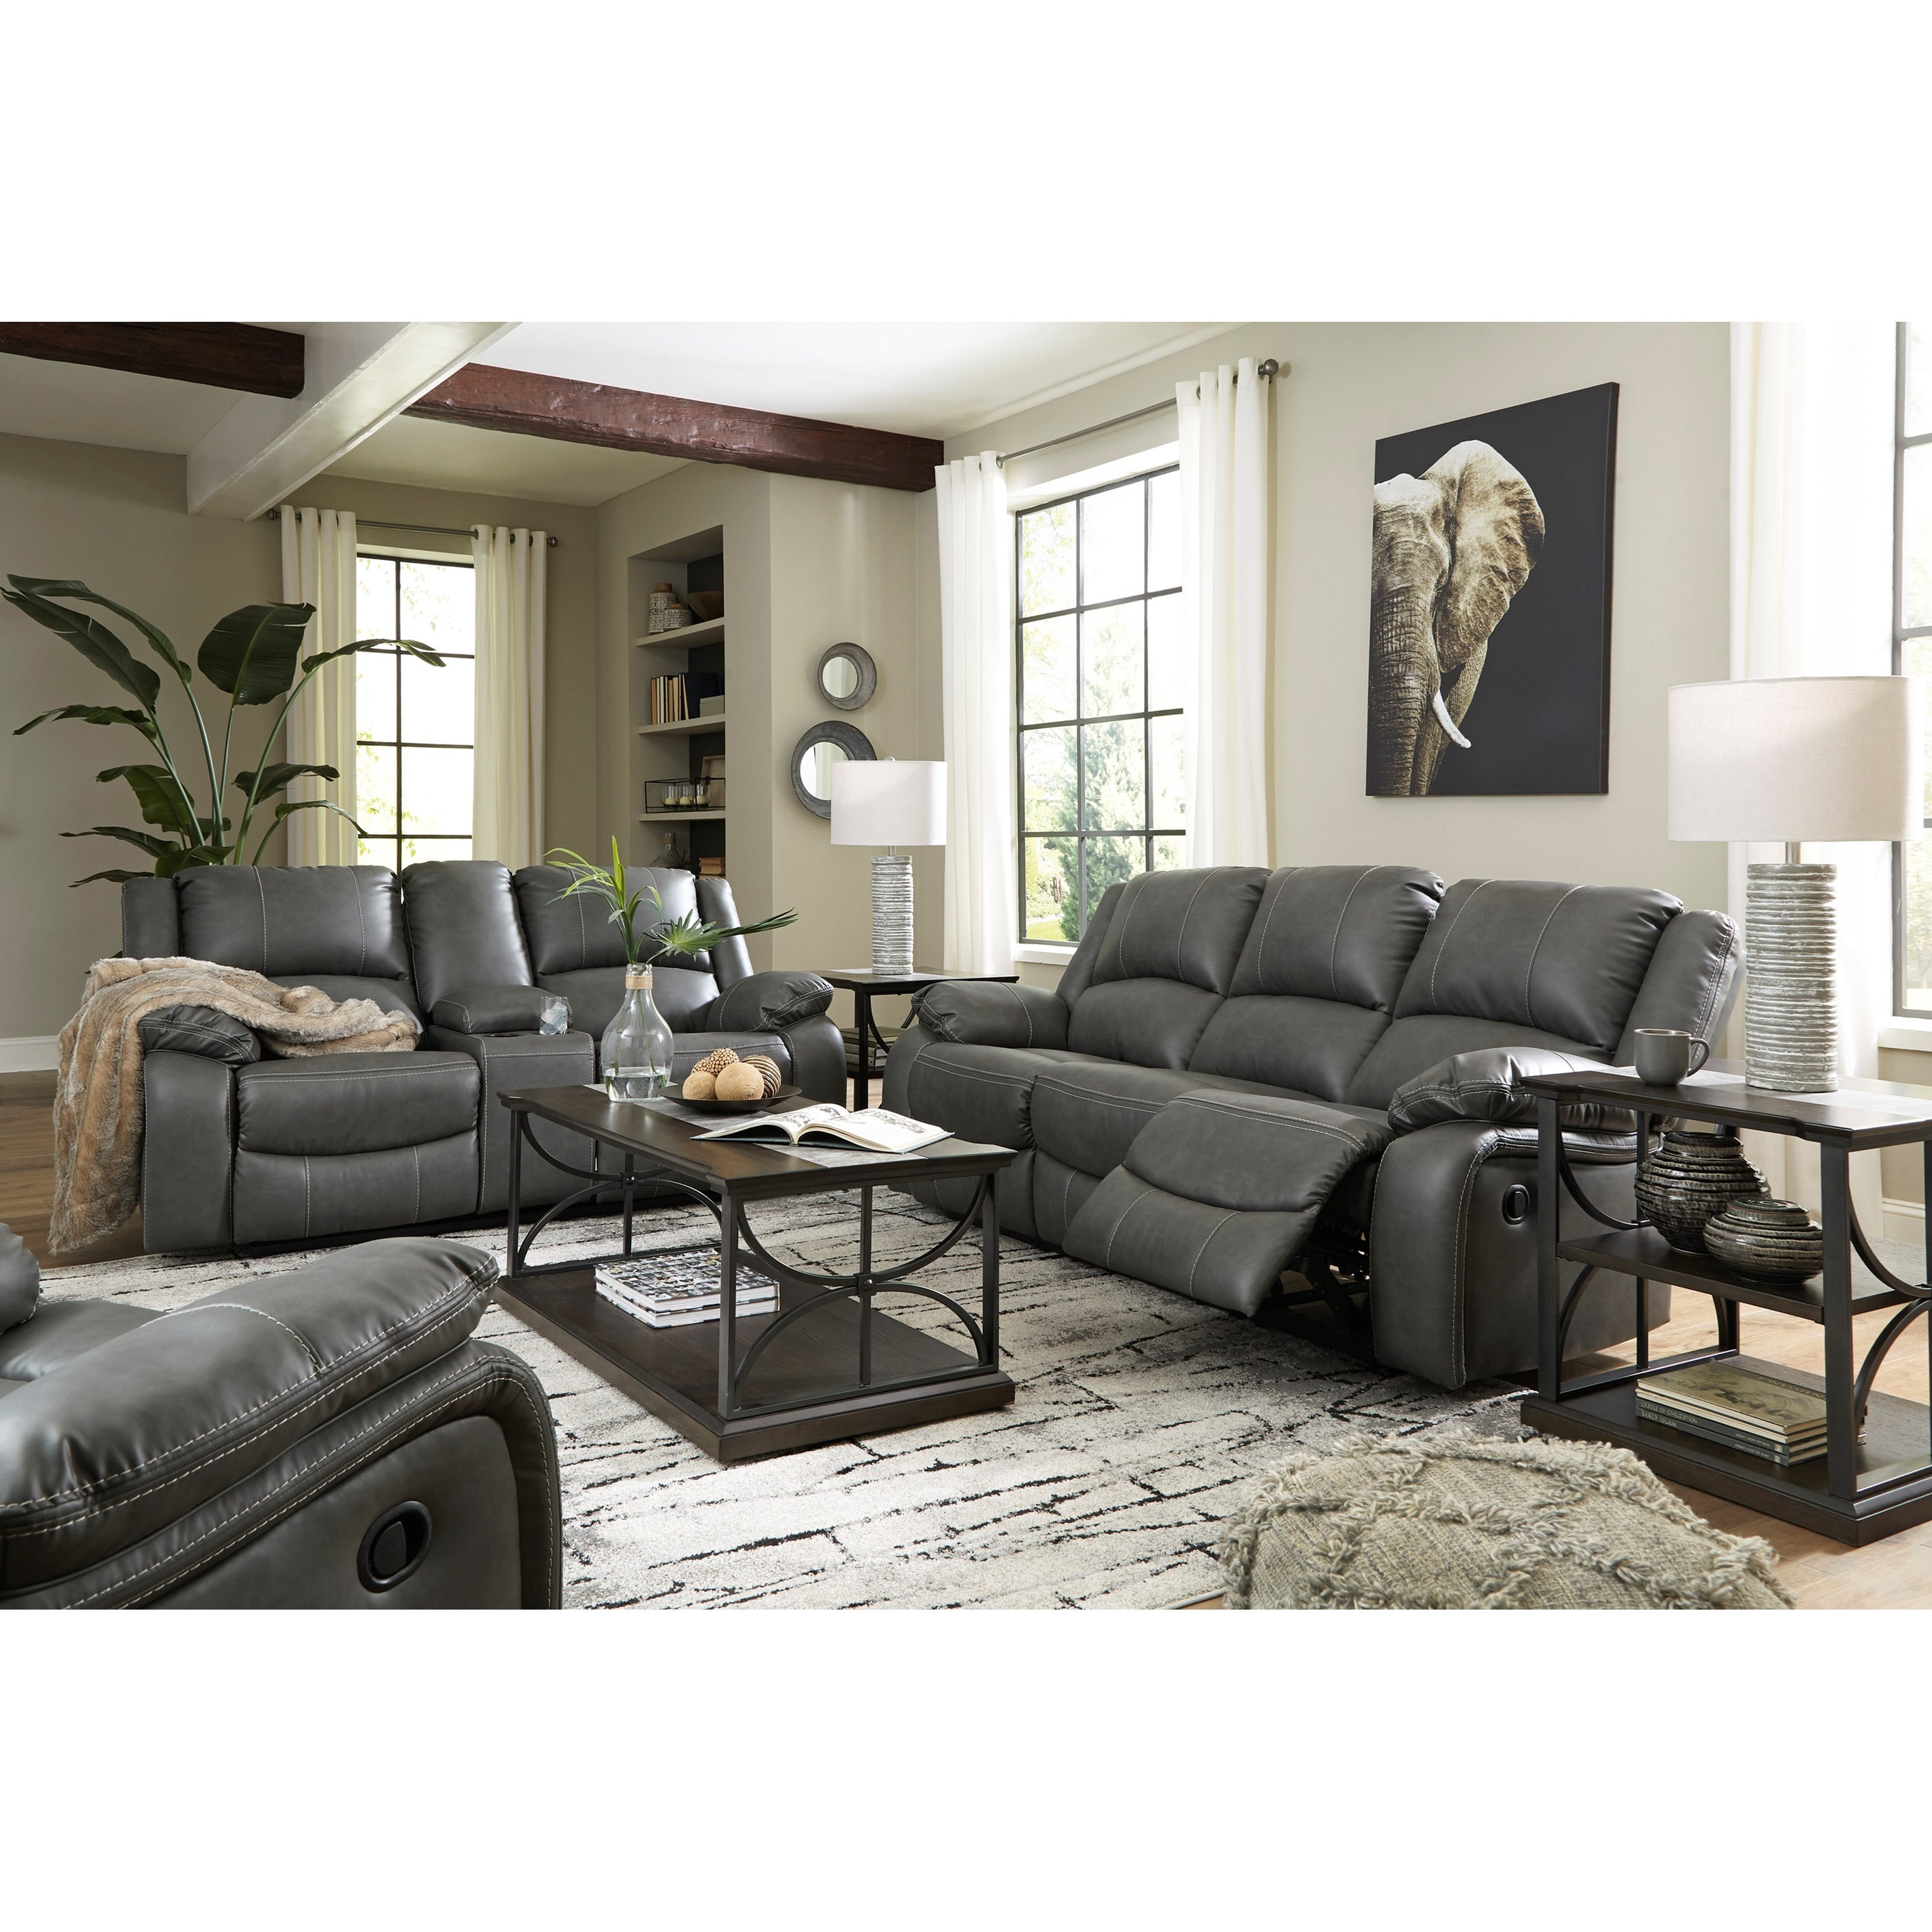 Calderwell Power Reclining Living Room Group by Signature Design by Ashley at Standard Furniture